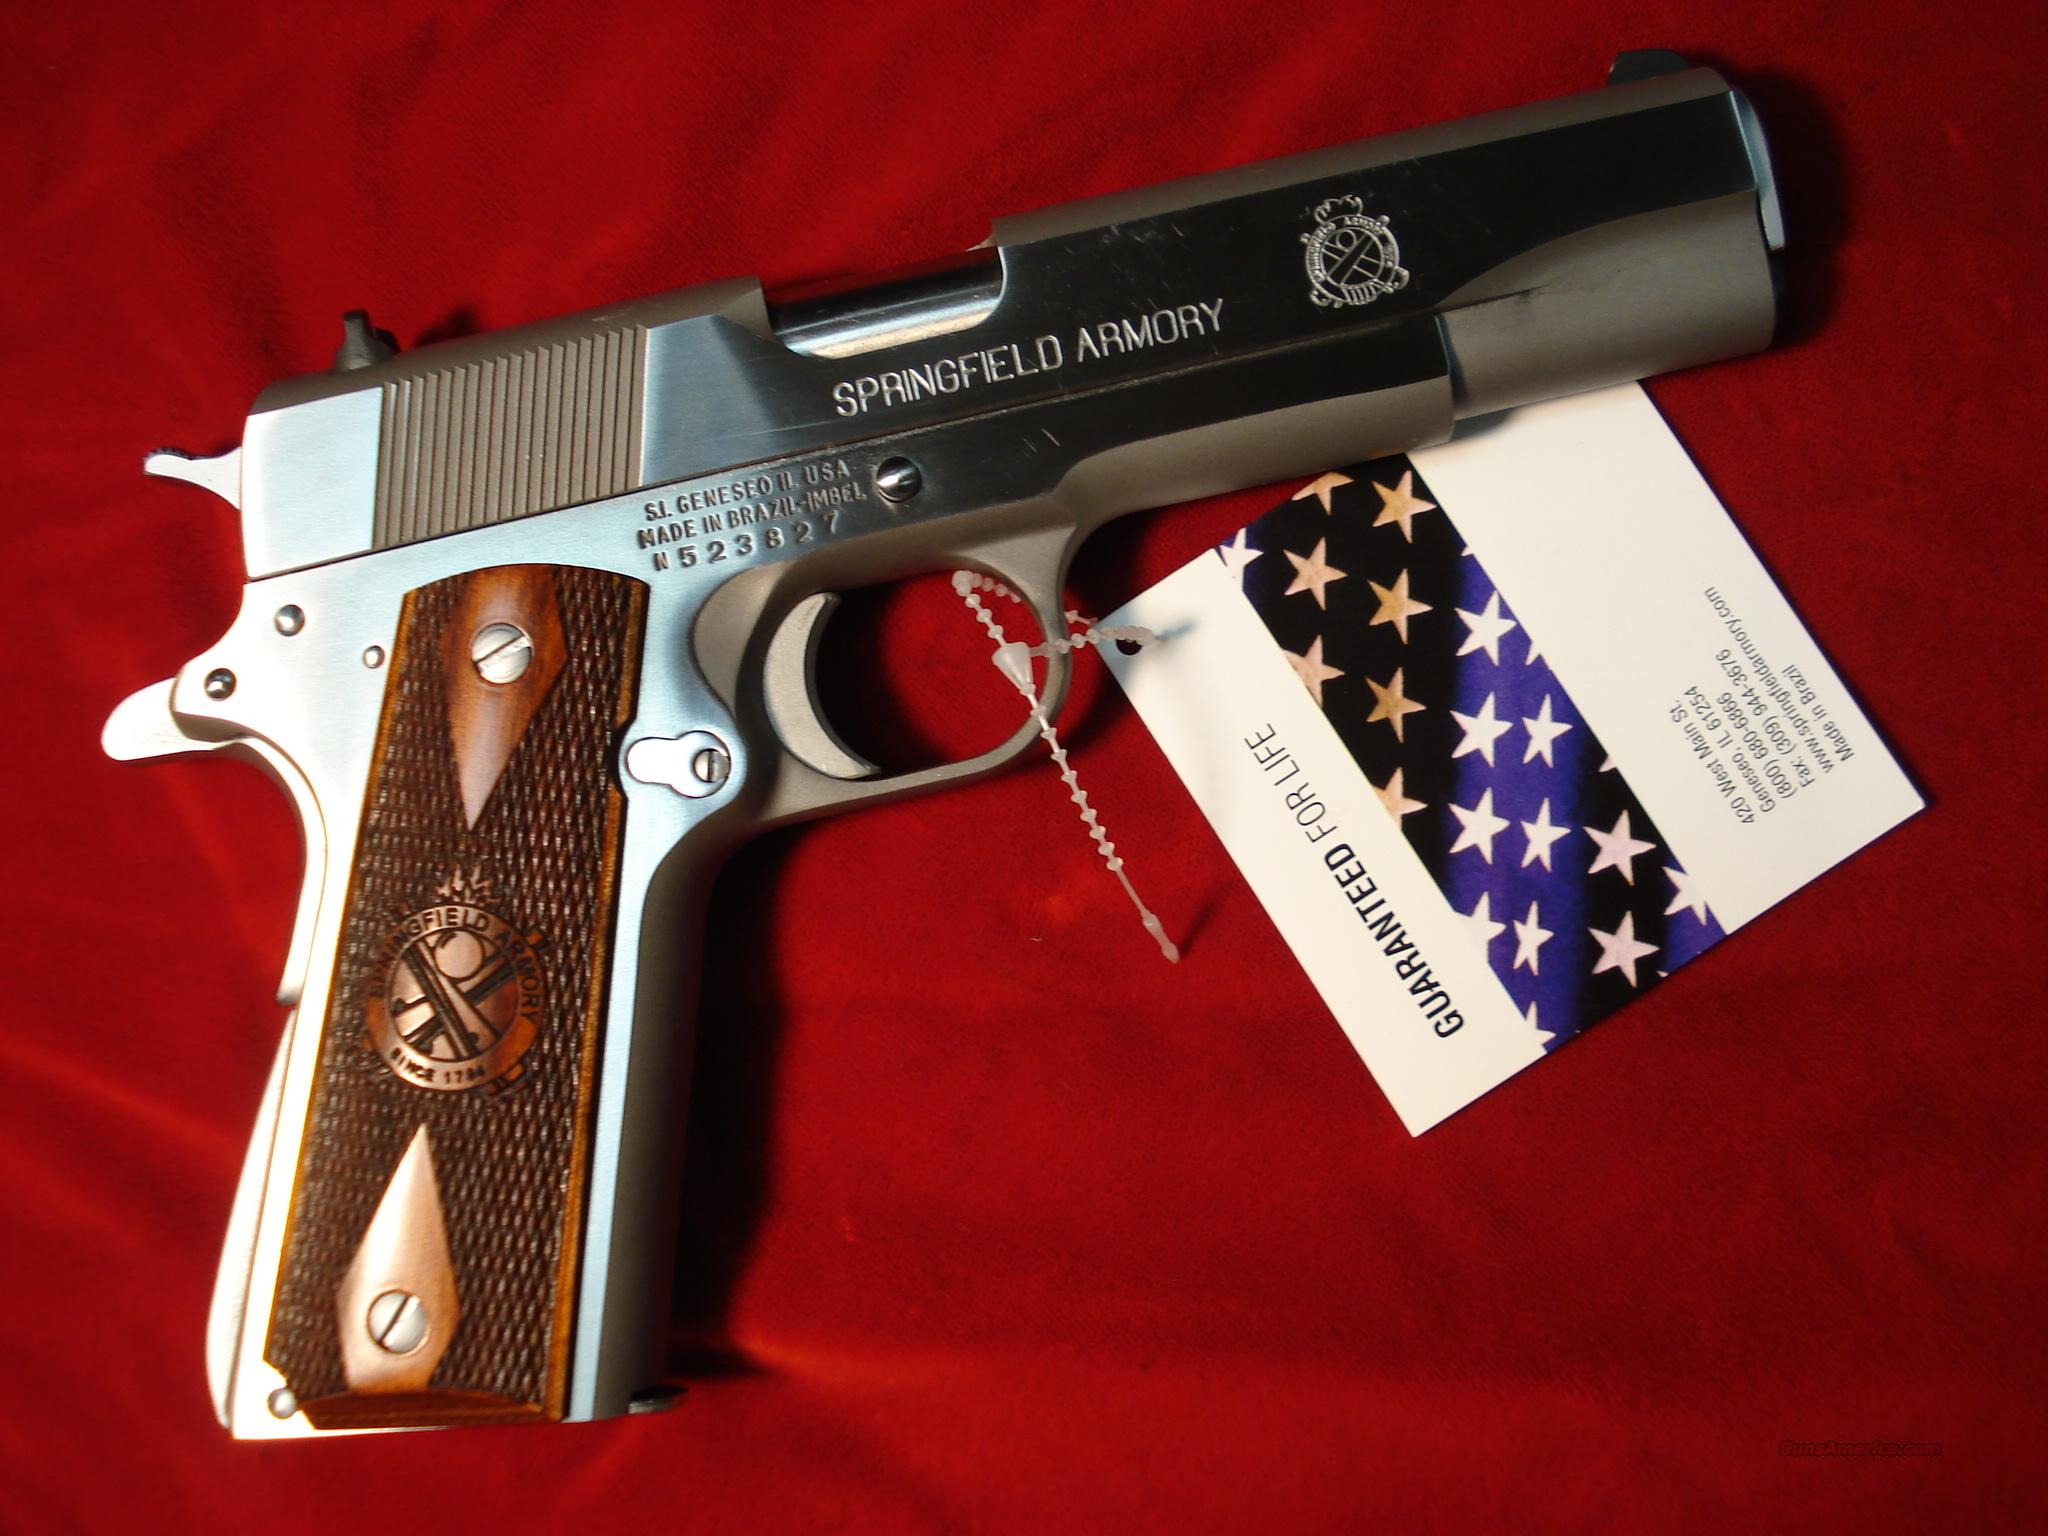 SPRINGFIELD ARMORY STAINLESS MILSPEC 1911A1  (PB9151LP) NEW  Guns > Pistols > Springfield Armory Pistols > 1911 Type